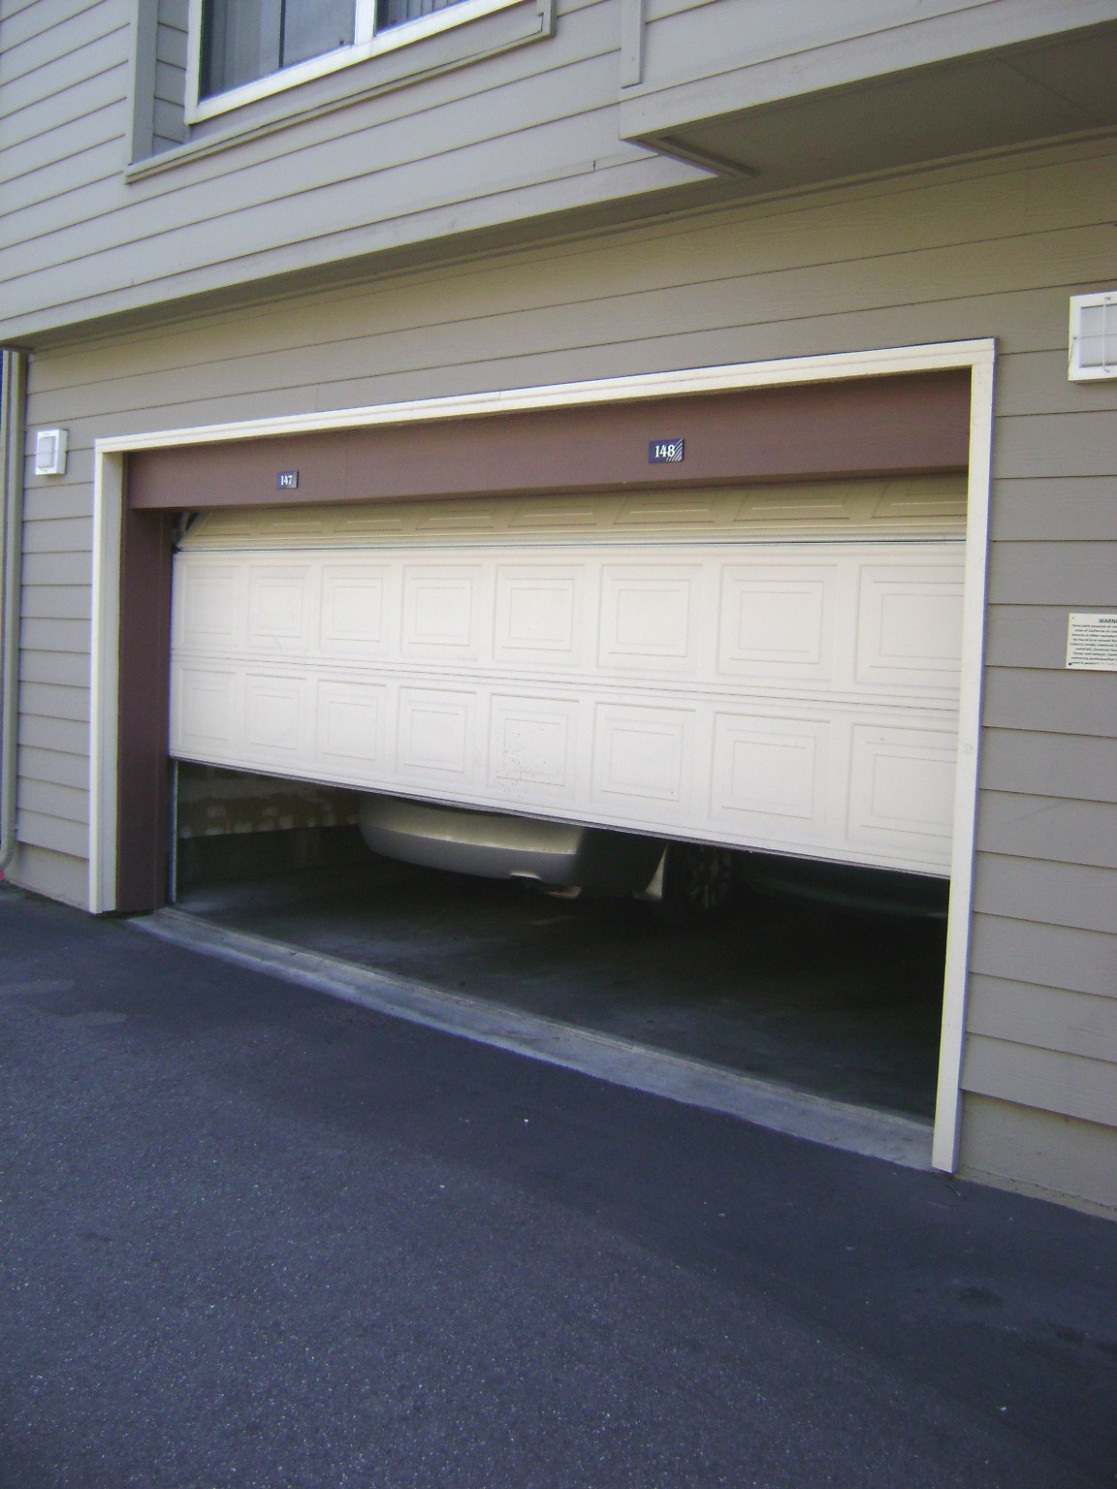 Garage door - Wikipedia